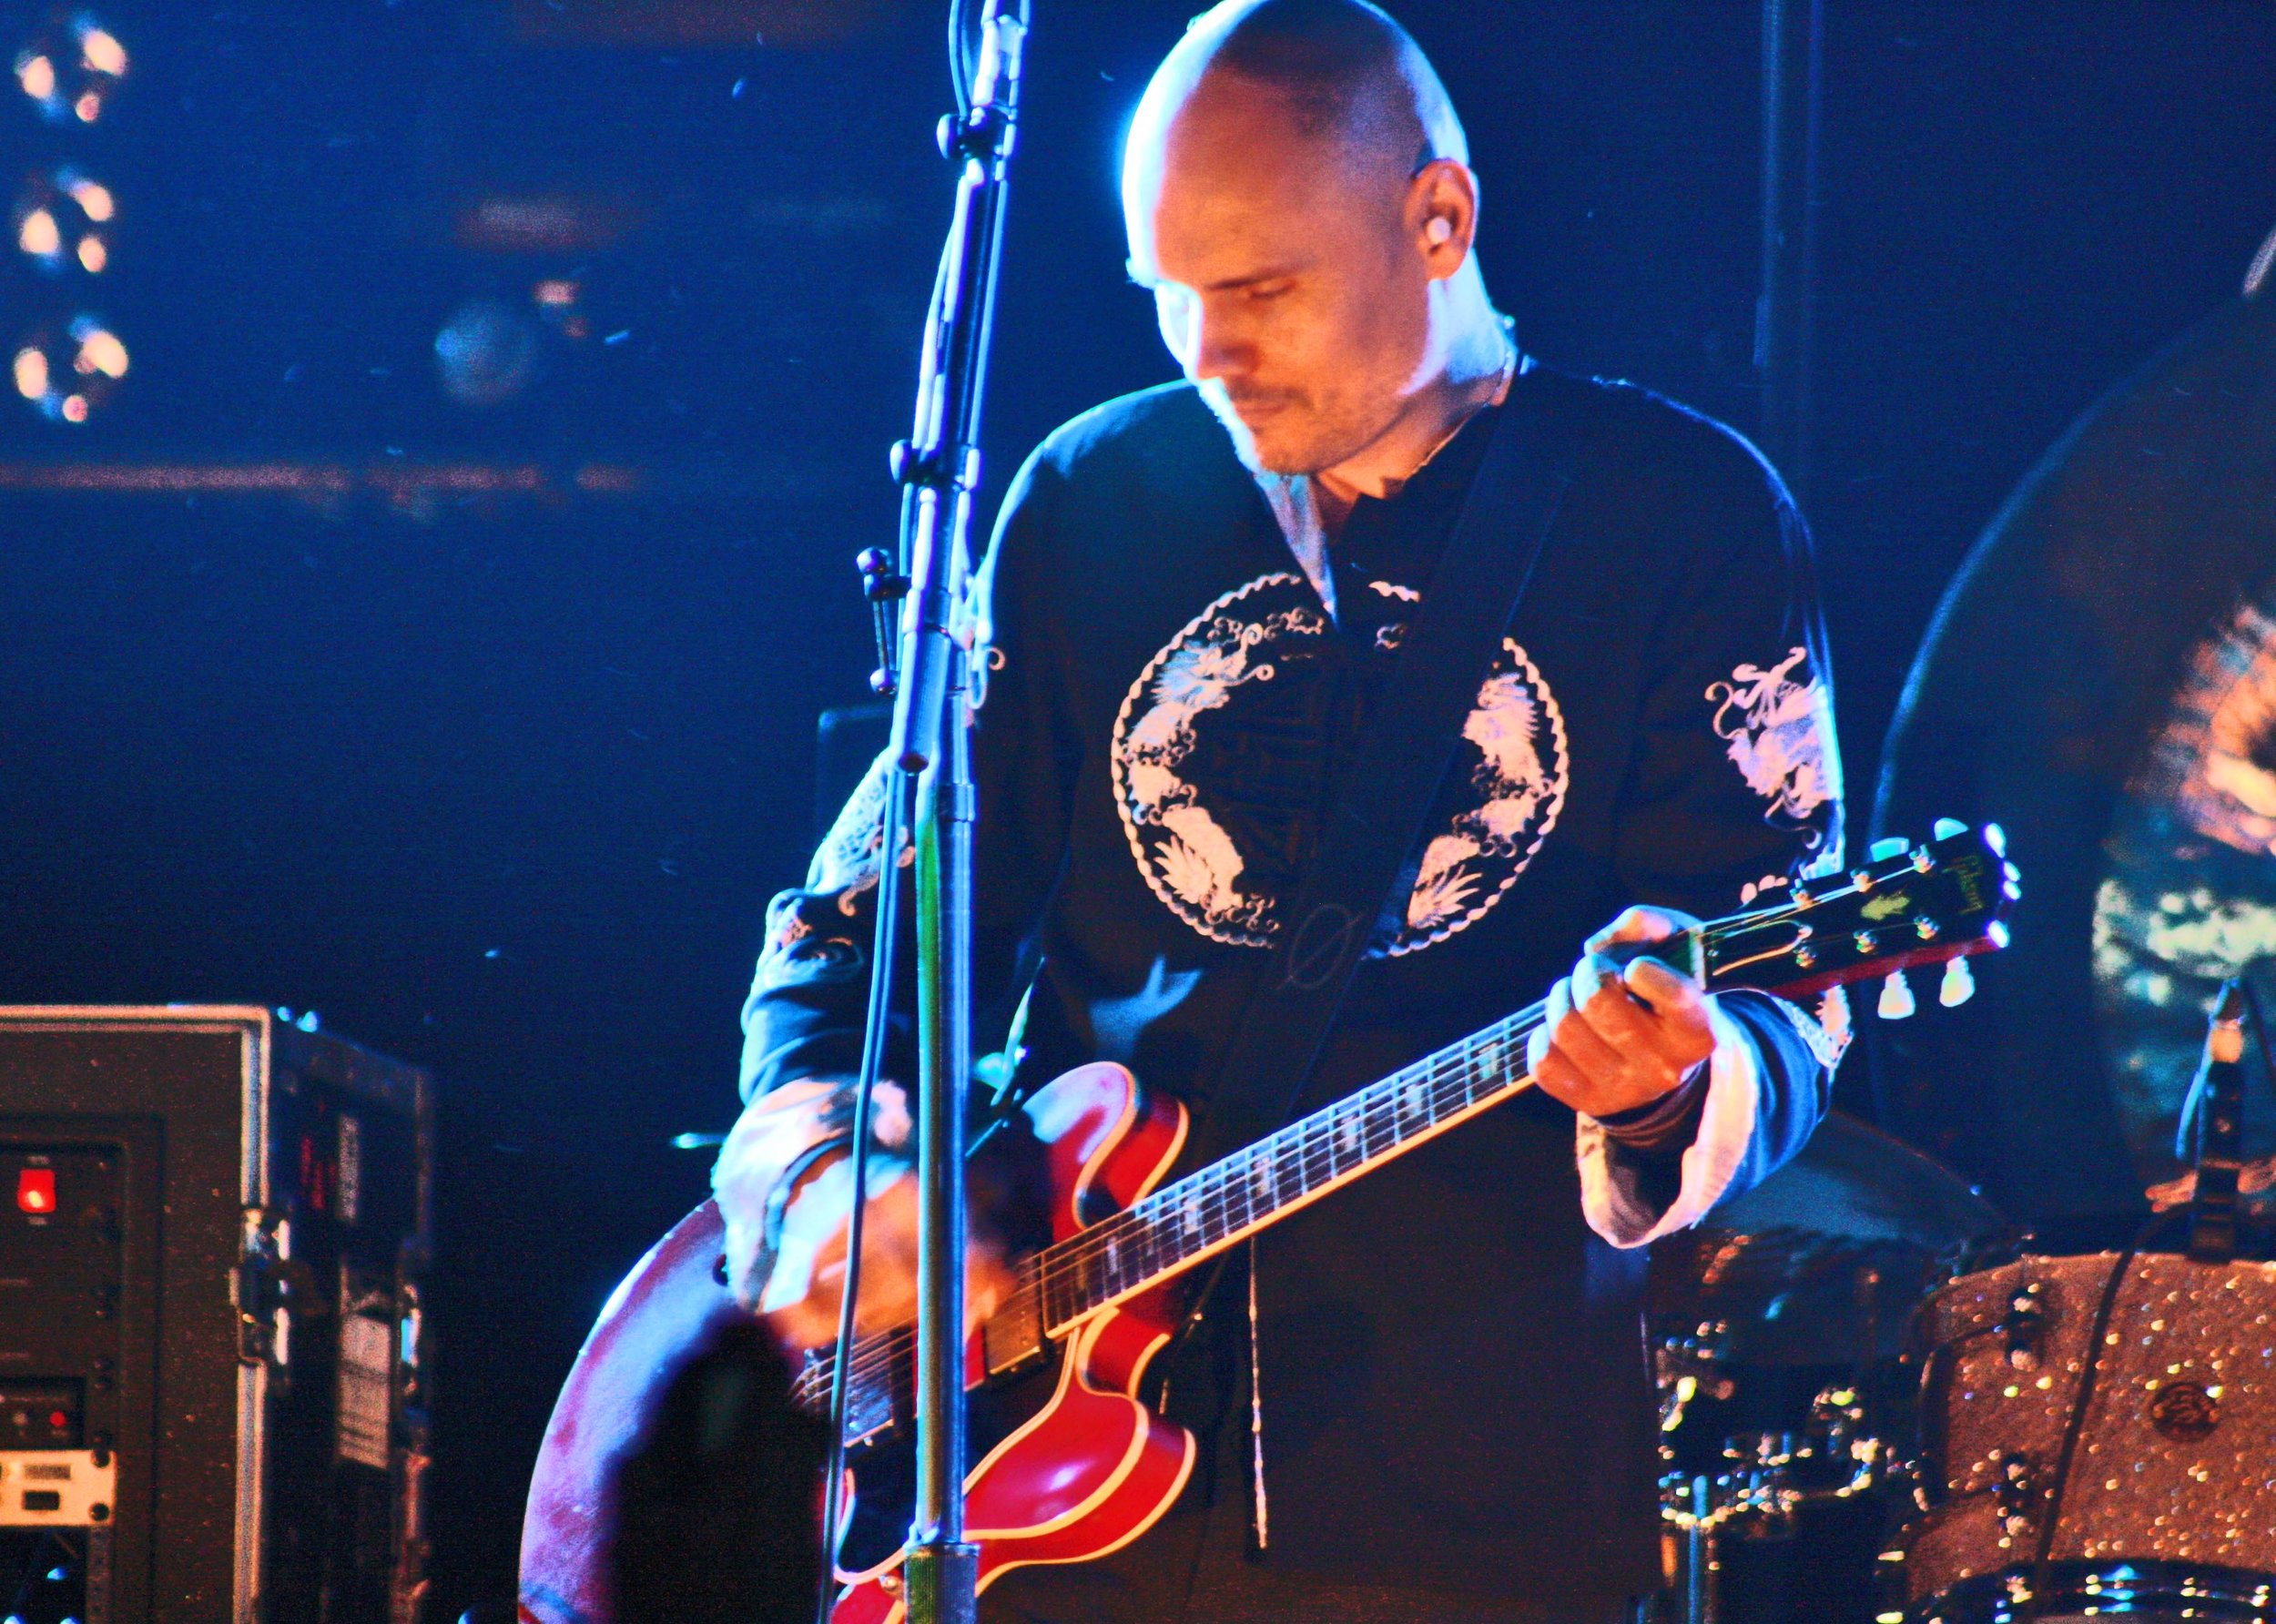 Smashing Pumpkins: Billy Corgan owns and uses various ZVEX pedals